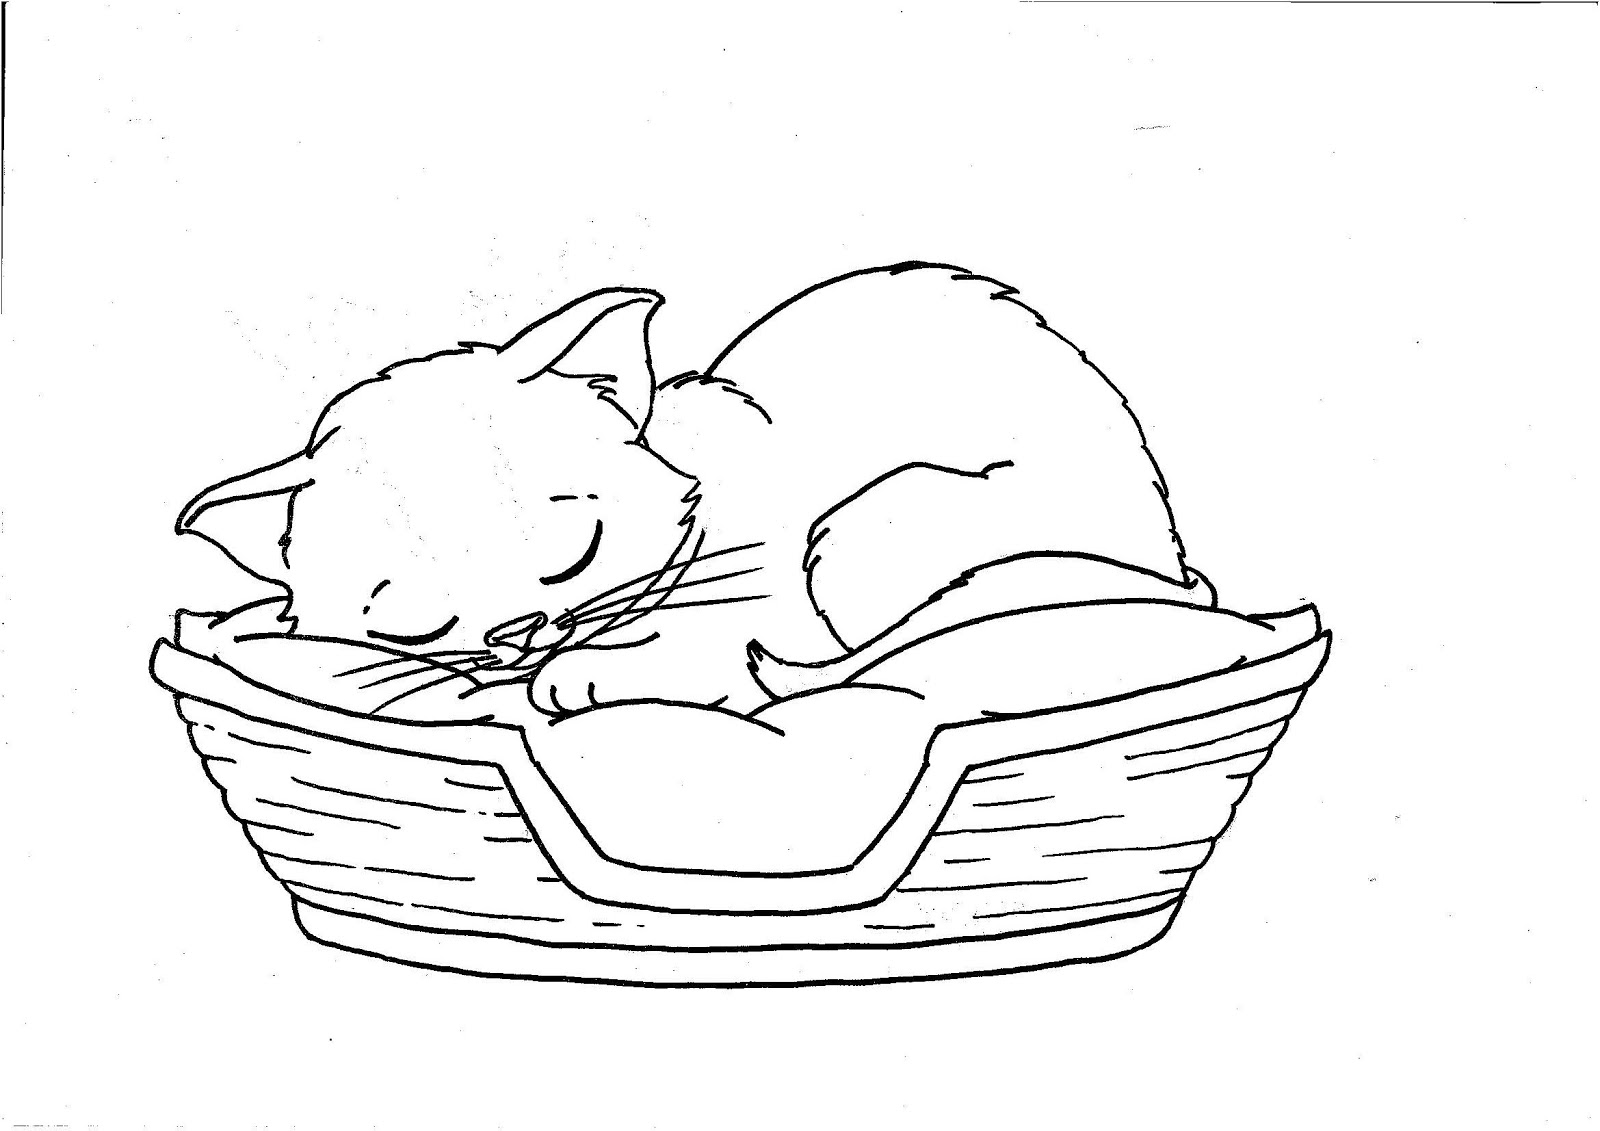 kittens coloring pages to print coloring pages cats and kittens coloring pages free and print coloring kittens to pages